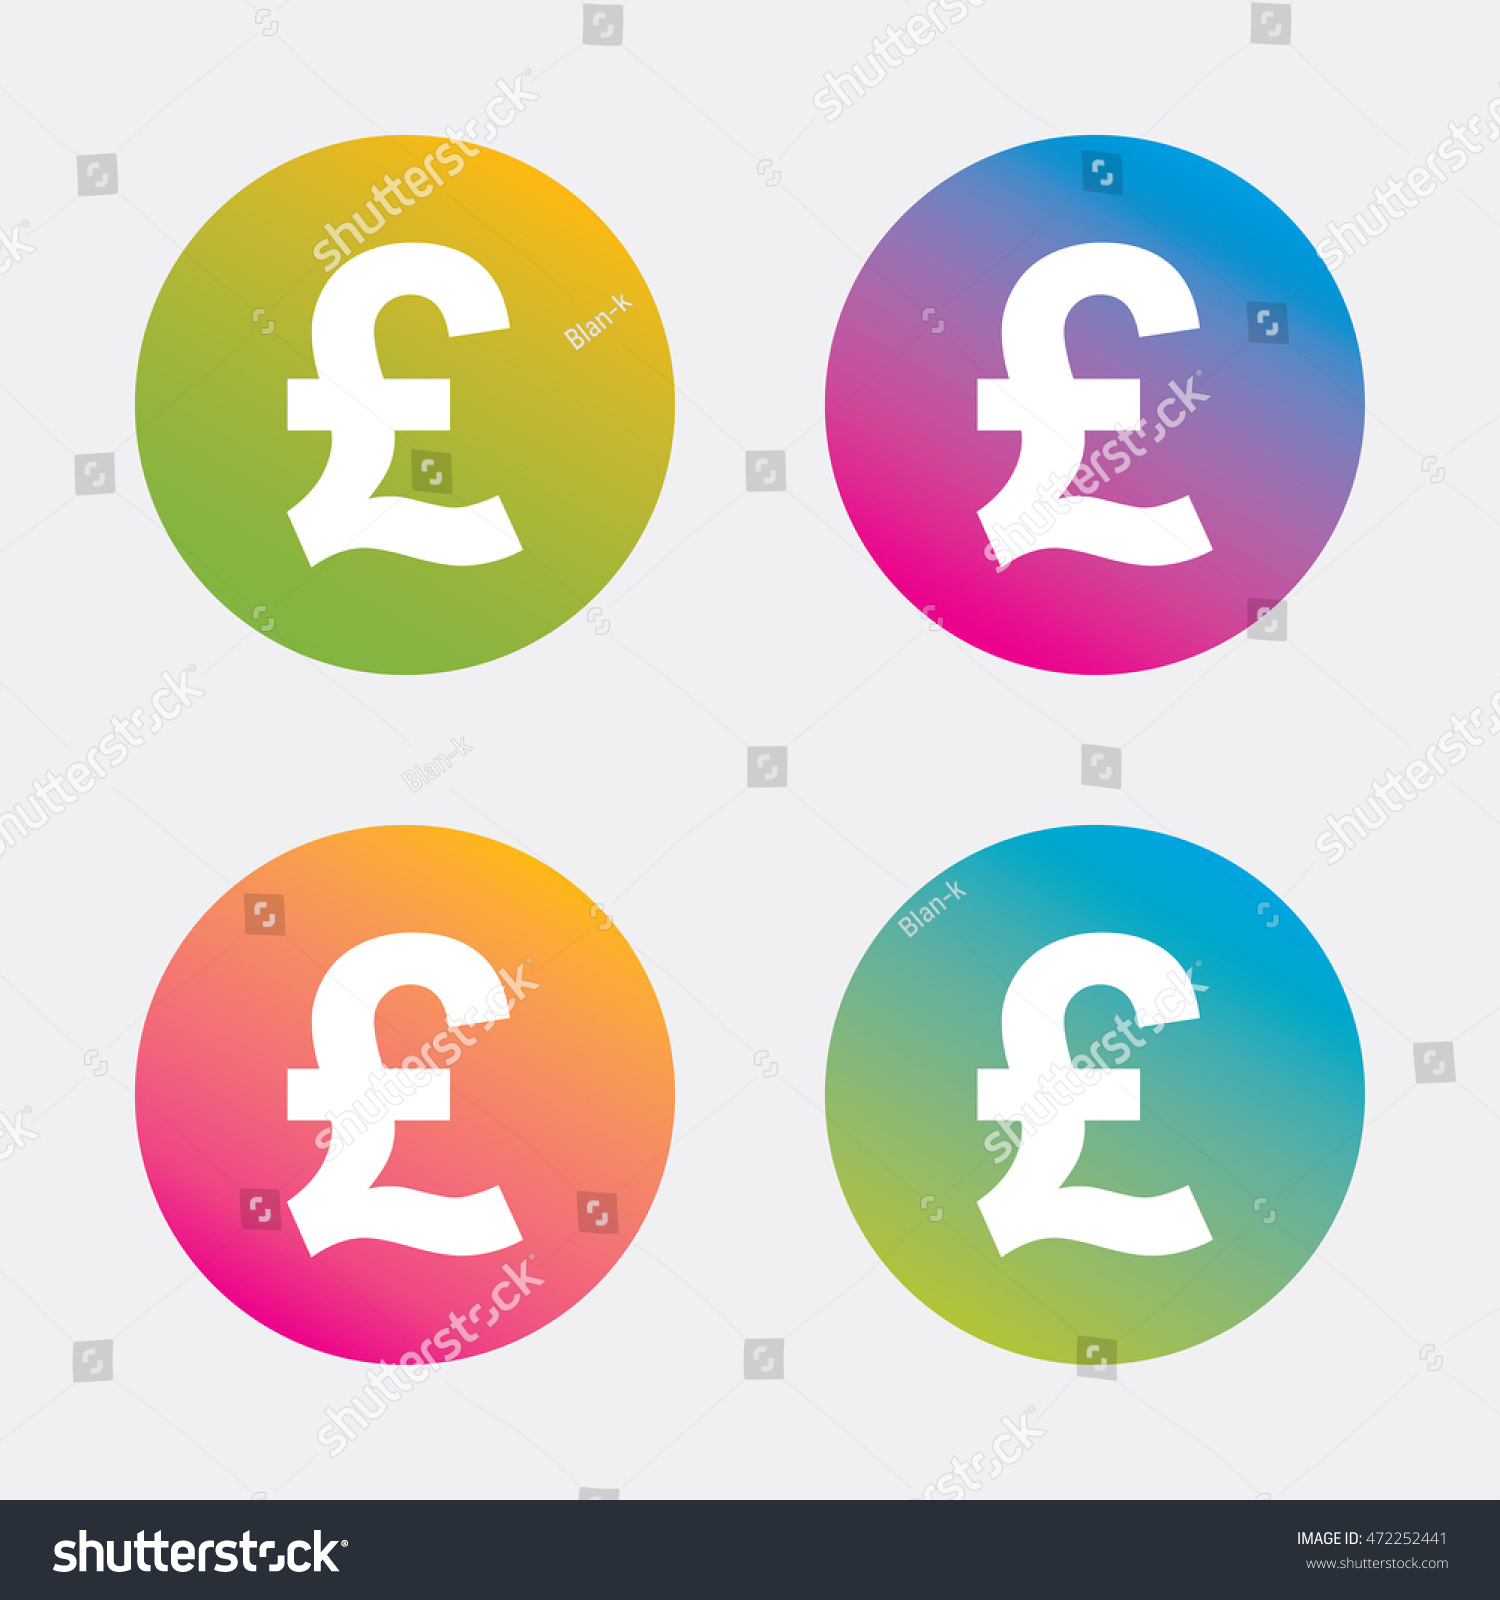 Pound sign icon gbp currency symbol stock vector 472252441 pound sign icon gbp currency symbol money label gradient flat buttons with icon buycottarizona Choice Image